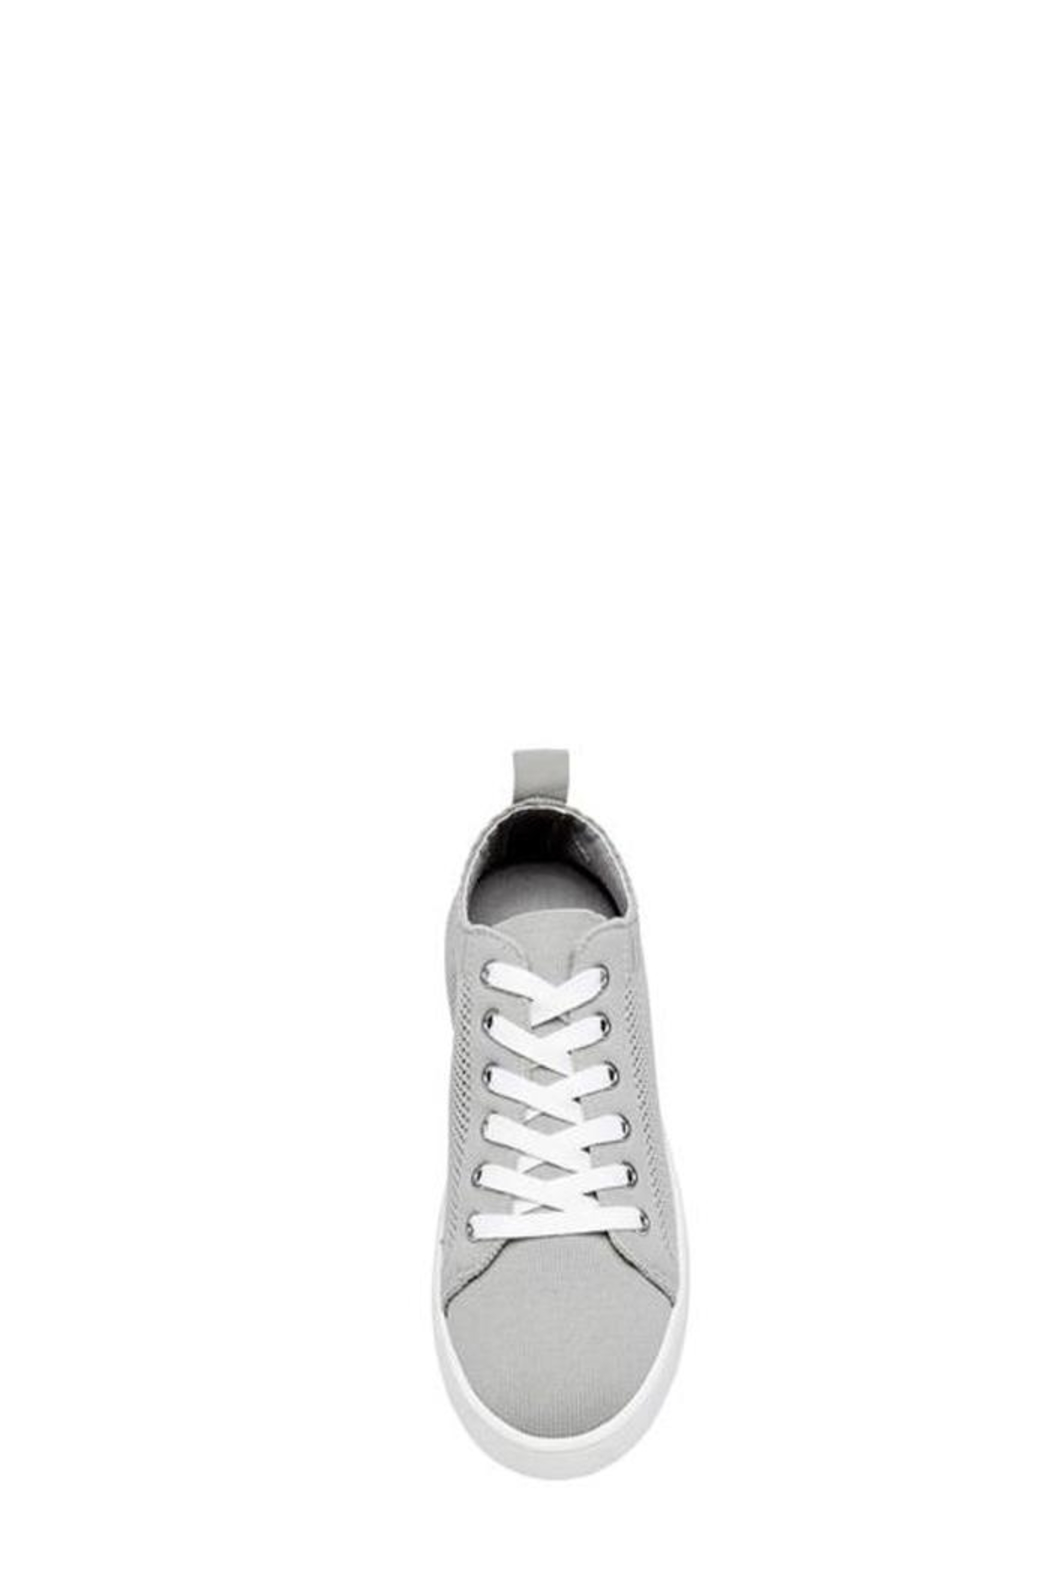 bbda374eea8 Steve Madden Bardo Sneaker from New York by Luna — Shoptiques